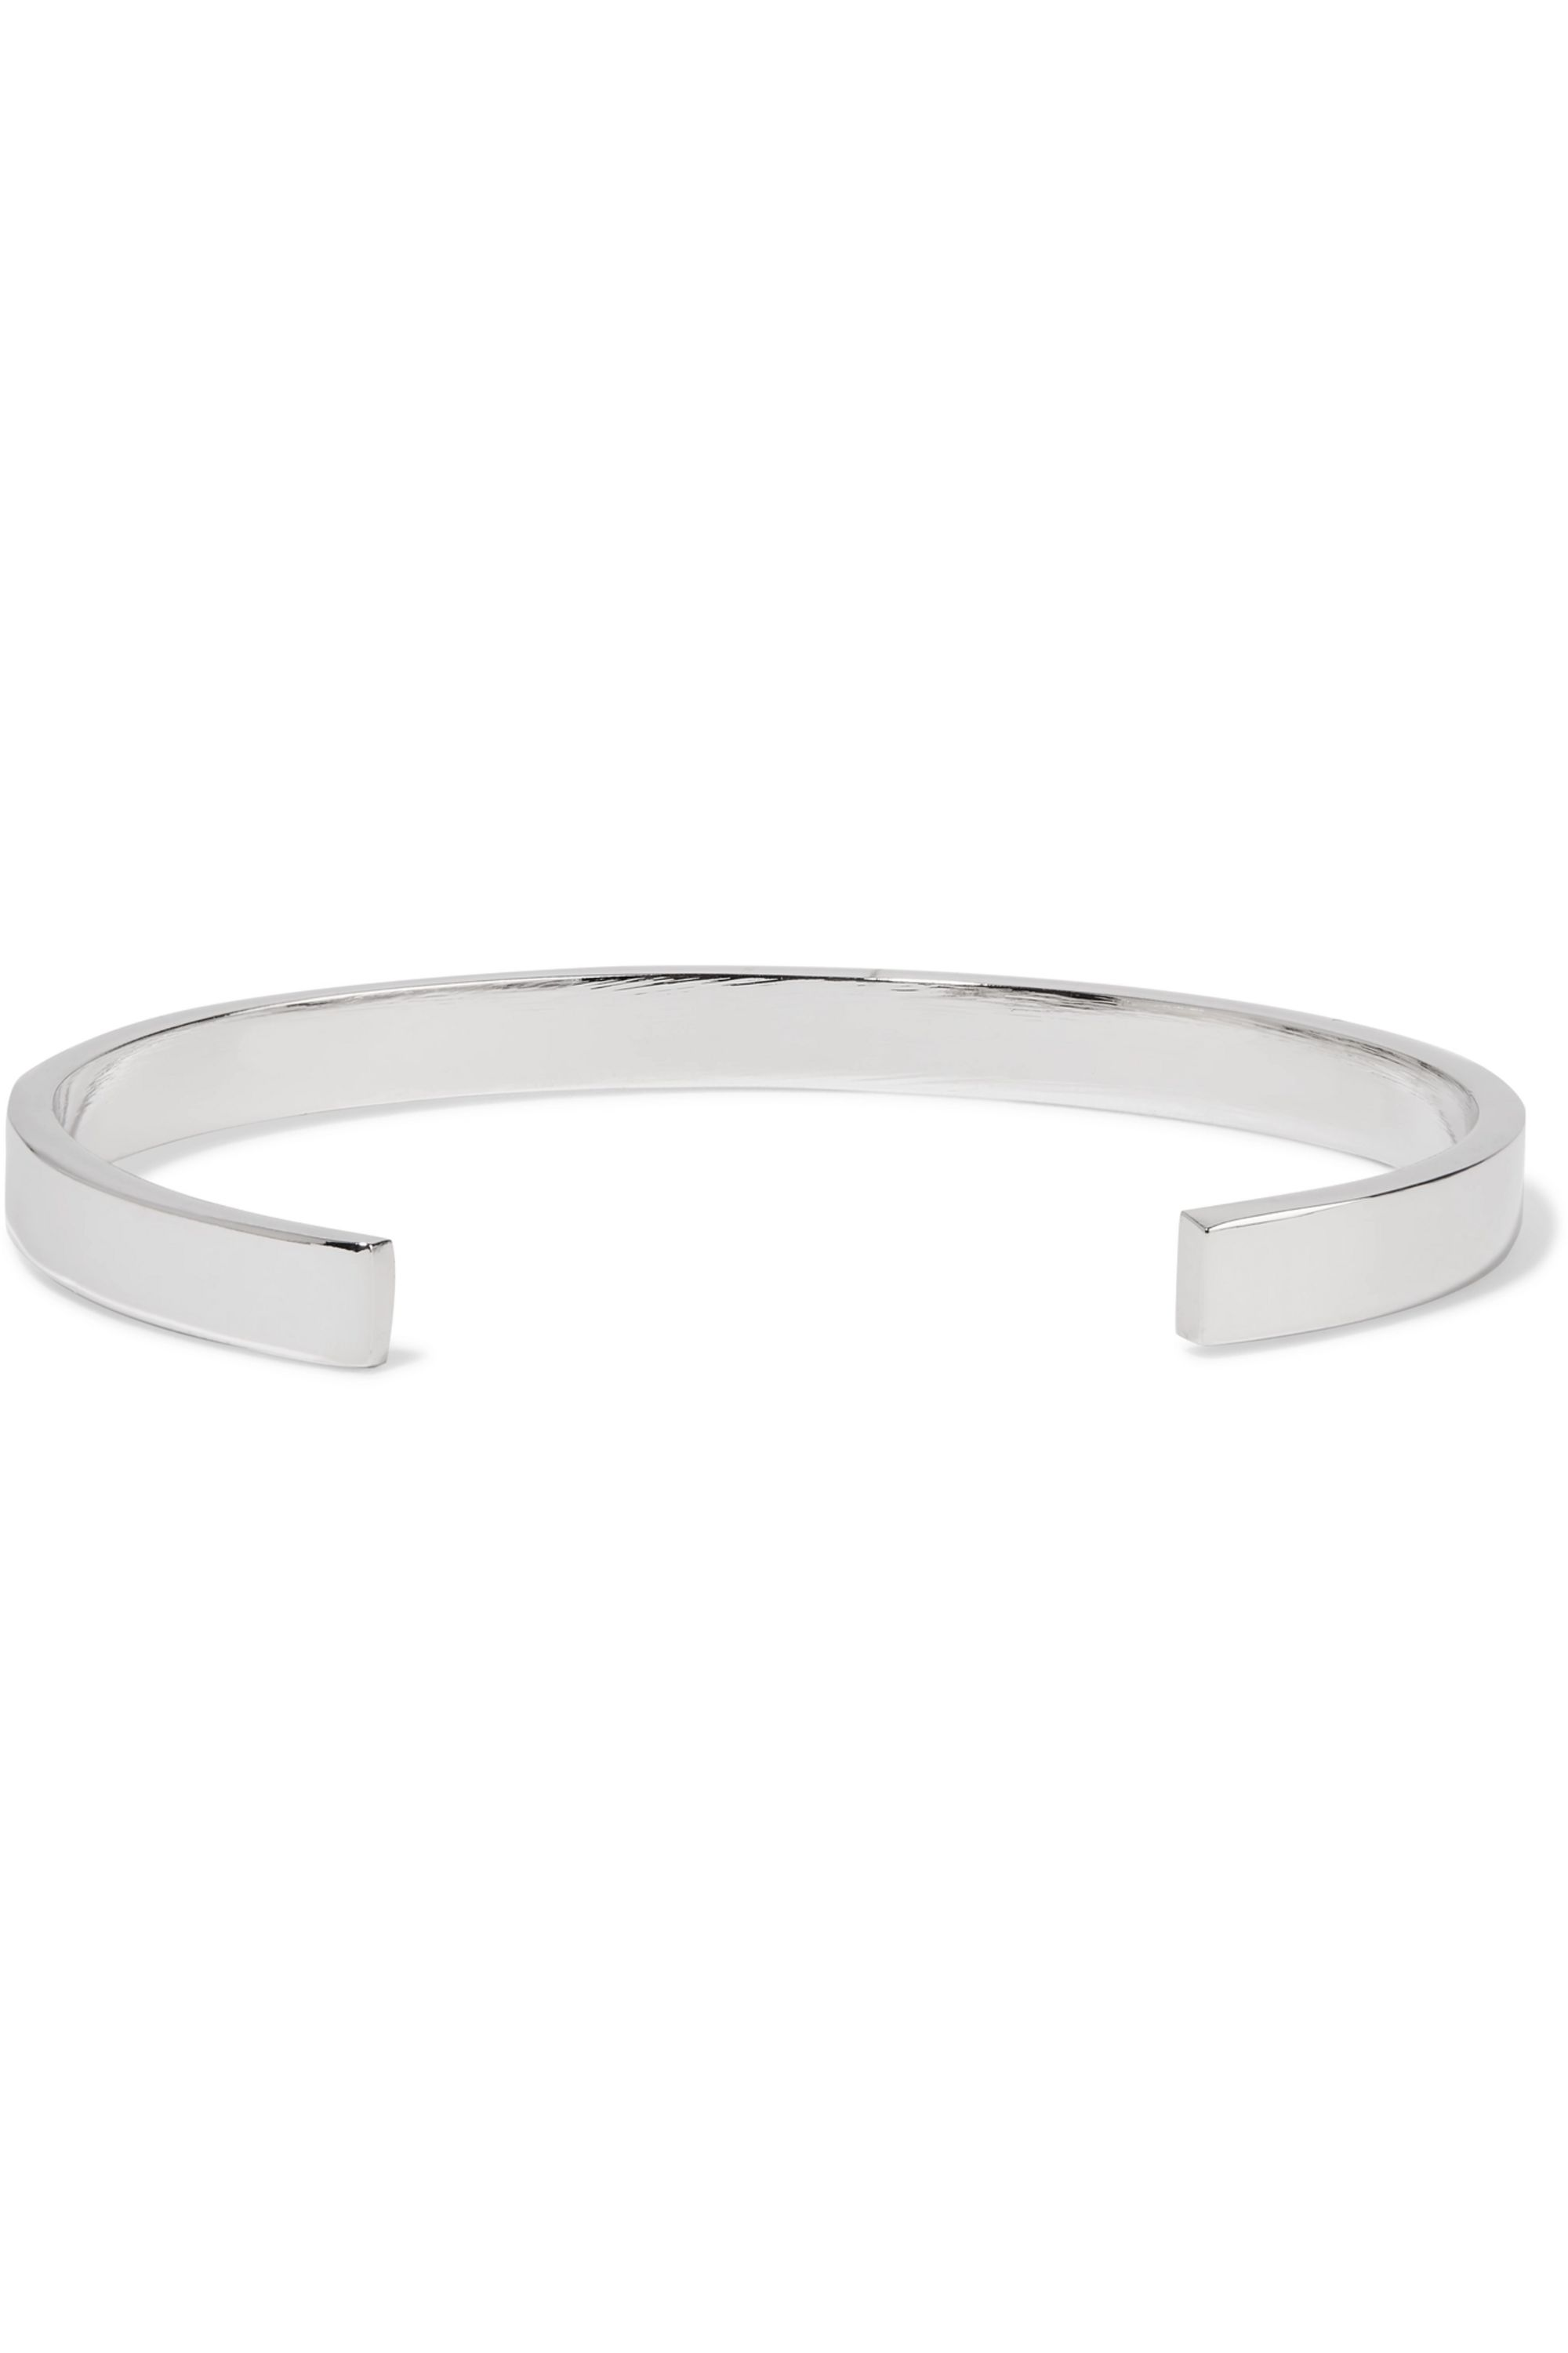 Jennifer Fisher Small Stripe silver and rhodium-plated cuff